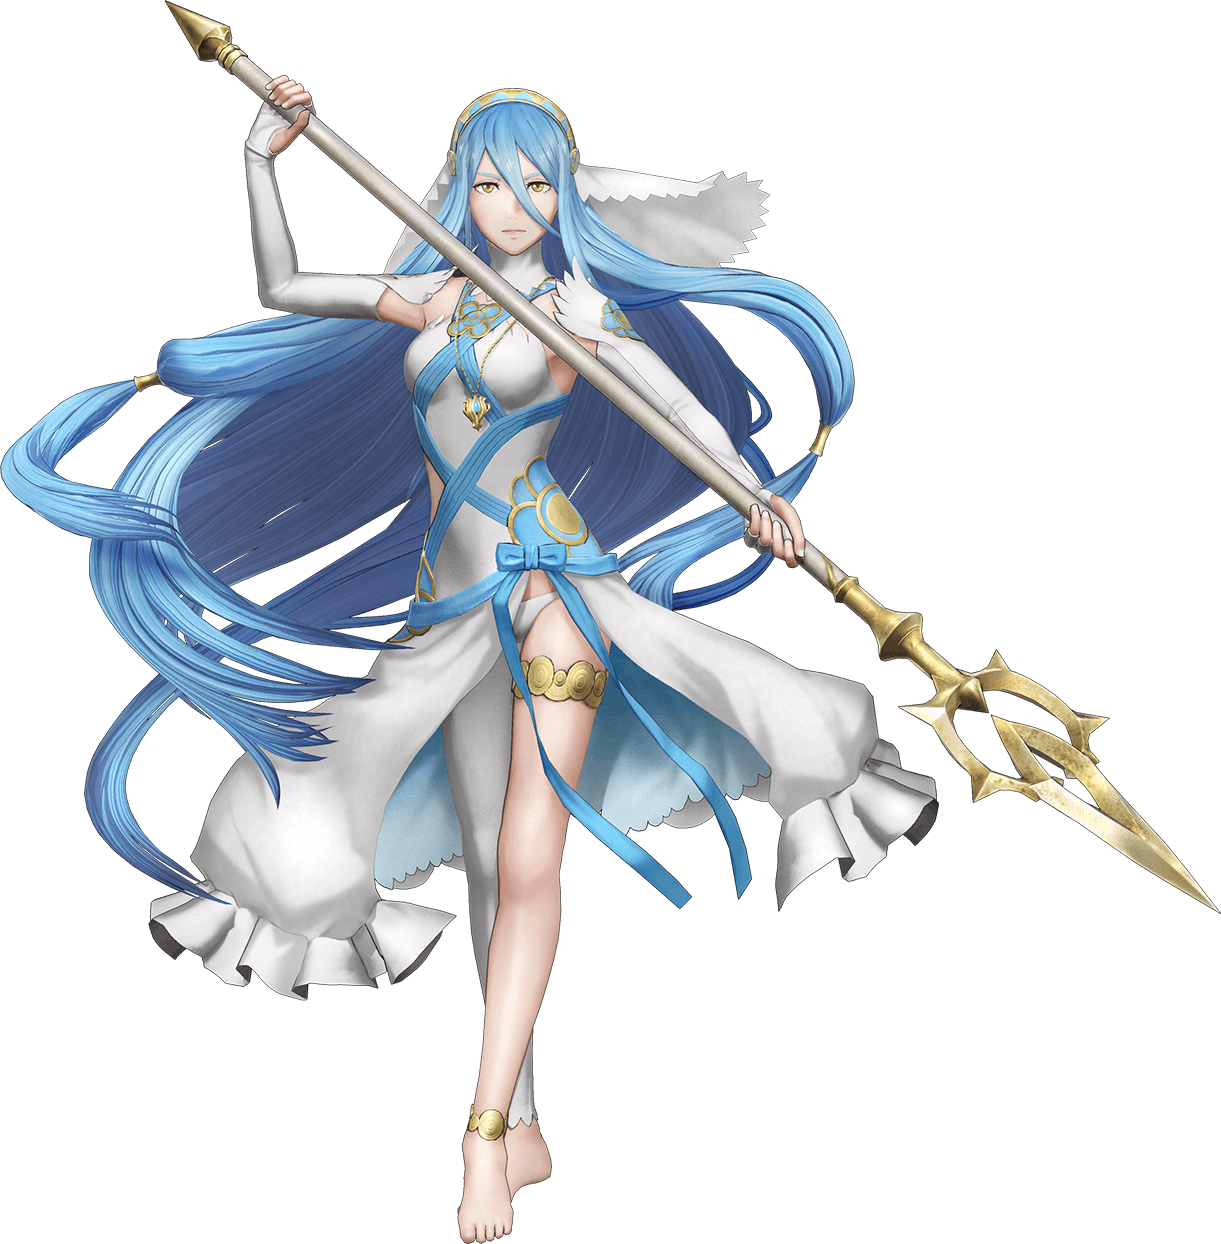 http://www.perfectly-nintendo.com/wp-content/gallery/fire-emblem-warriors-07-12-2017/1.png